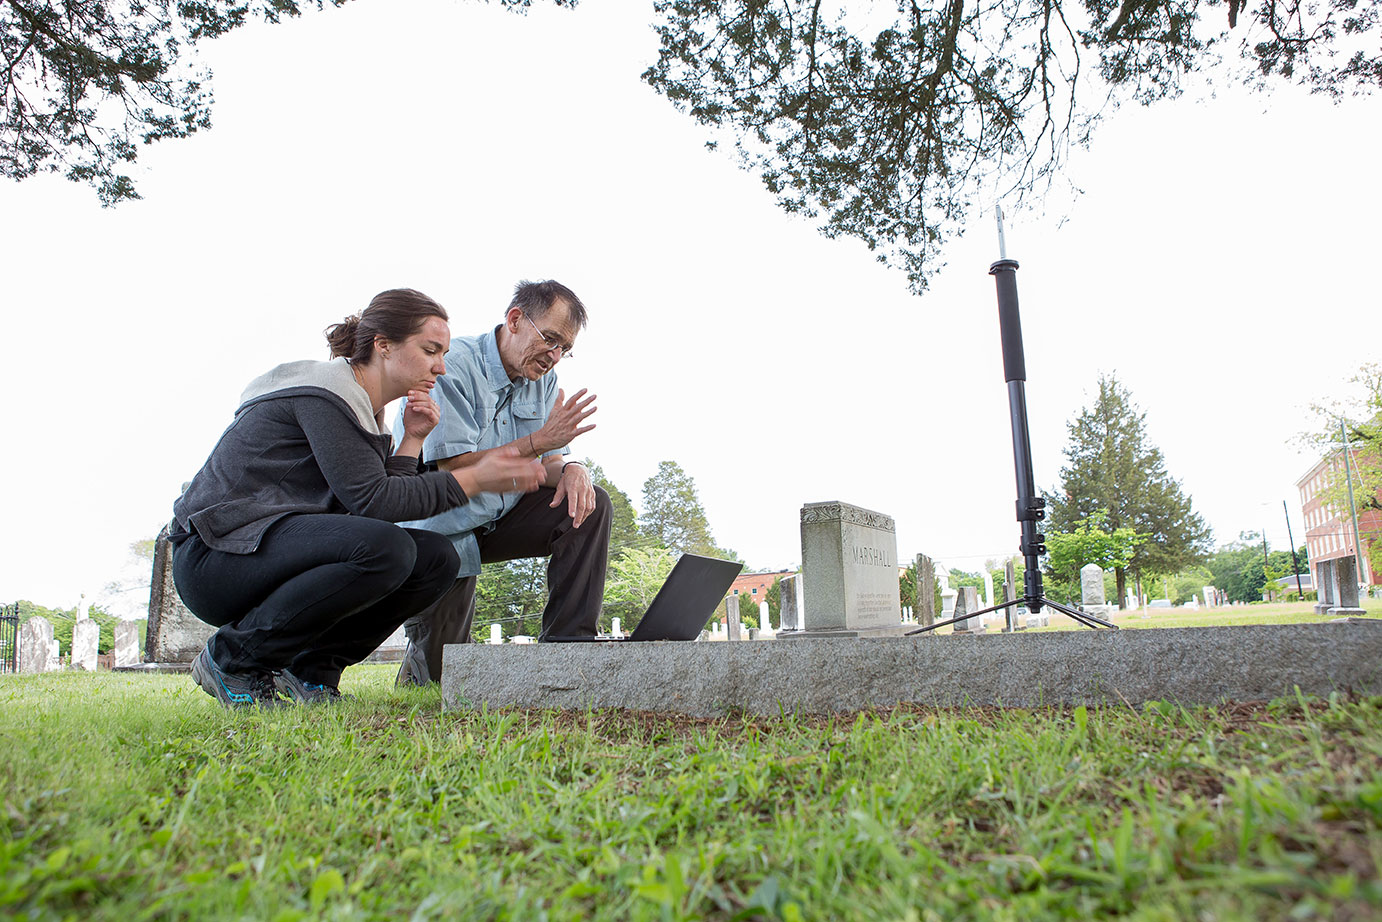 Emily Pelland, left, and Dr. Joel Beeson use the Ricoh Theta camera to create a spherical image of Marion Cemetery in Marion, Al. They are trying to match a frame used in a story that other students created for the project.